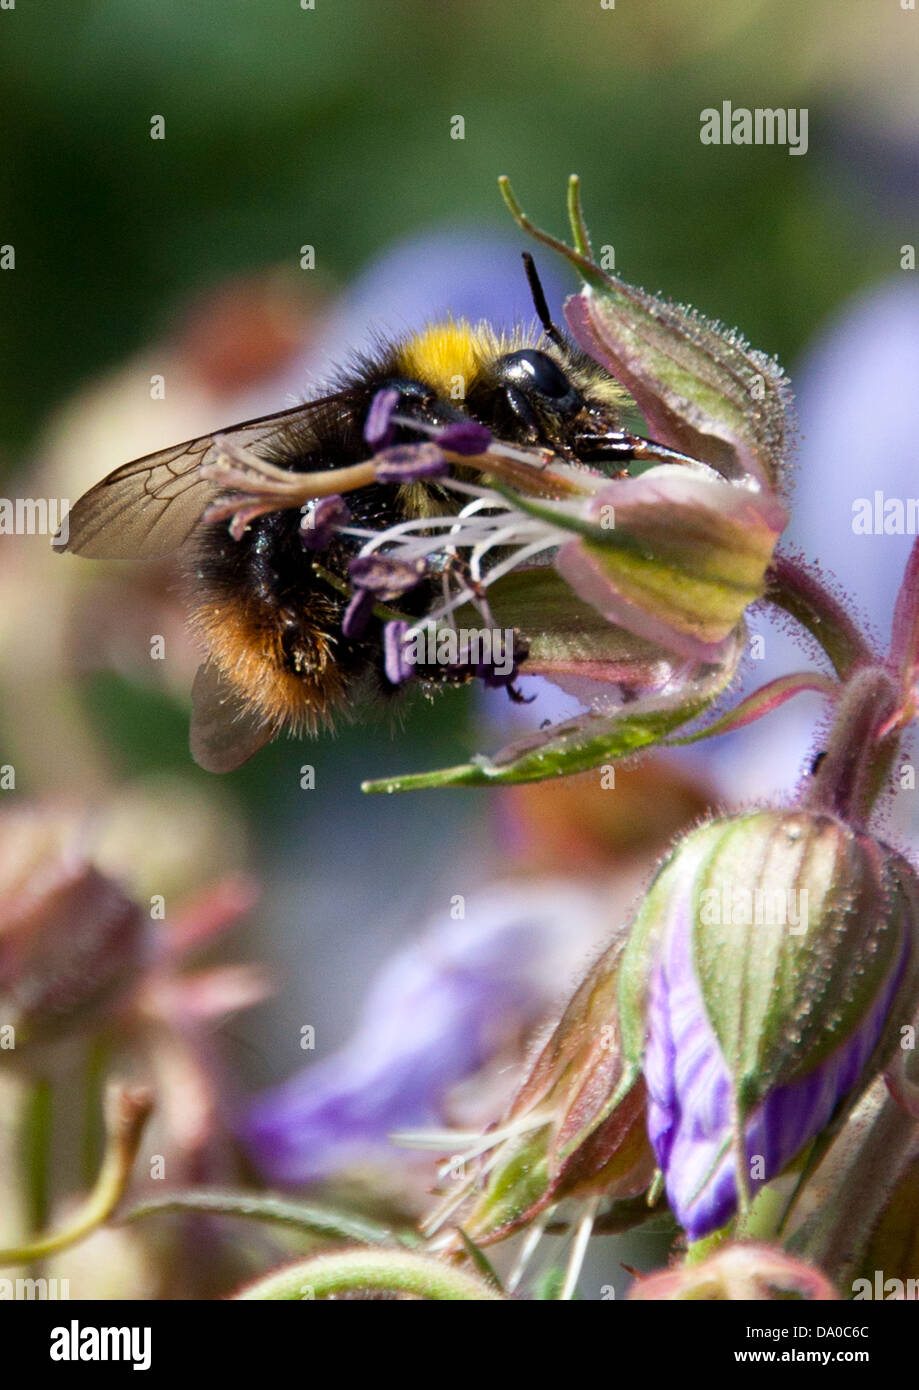 Honey Bee searching for nectar, while pollinating the local wild flowers. - Stock Image